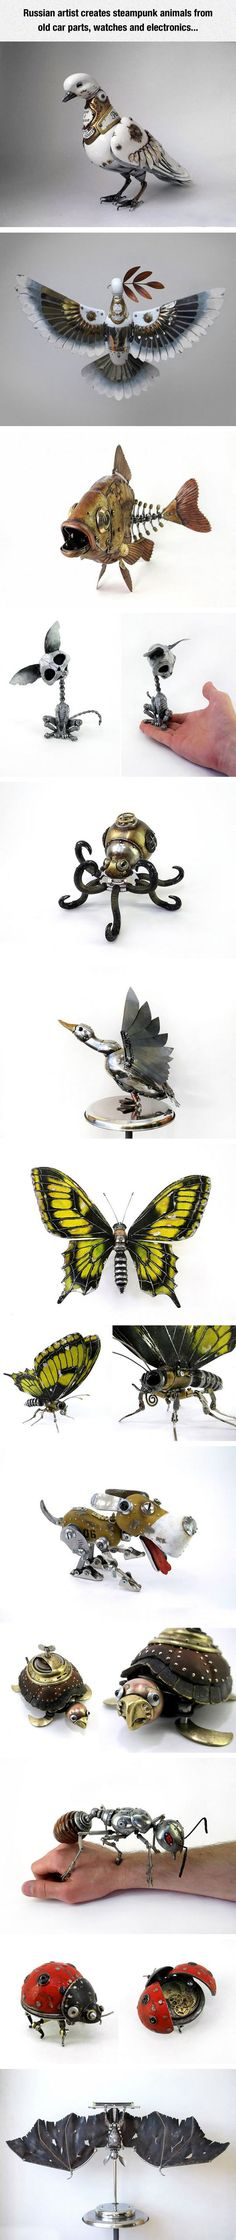 Steampunk Animals From Old Car Parts. I like the pigeon